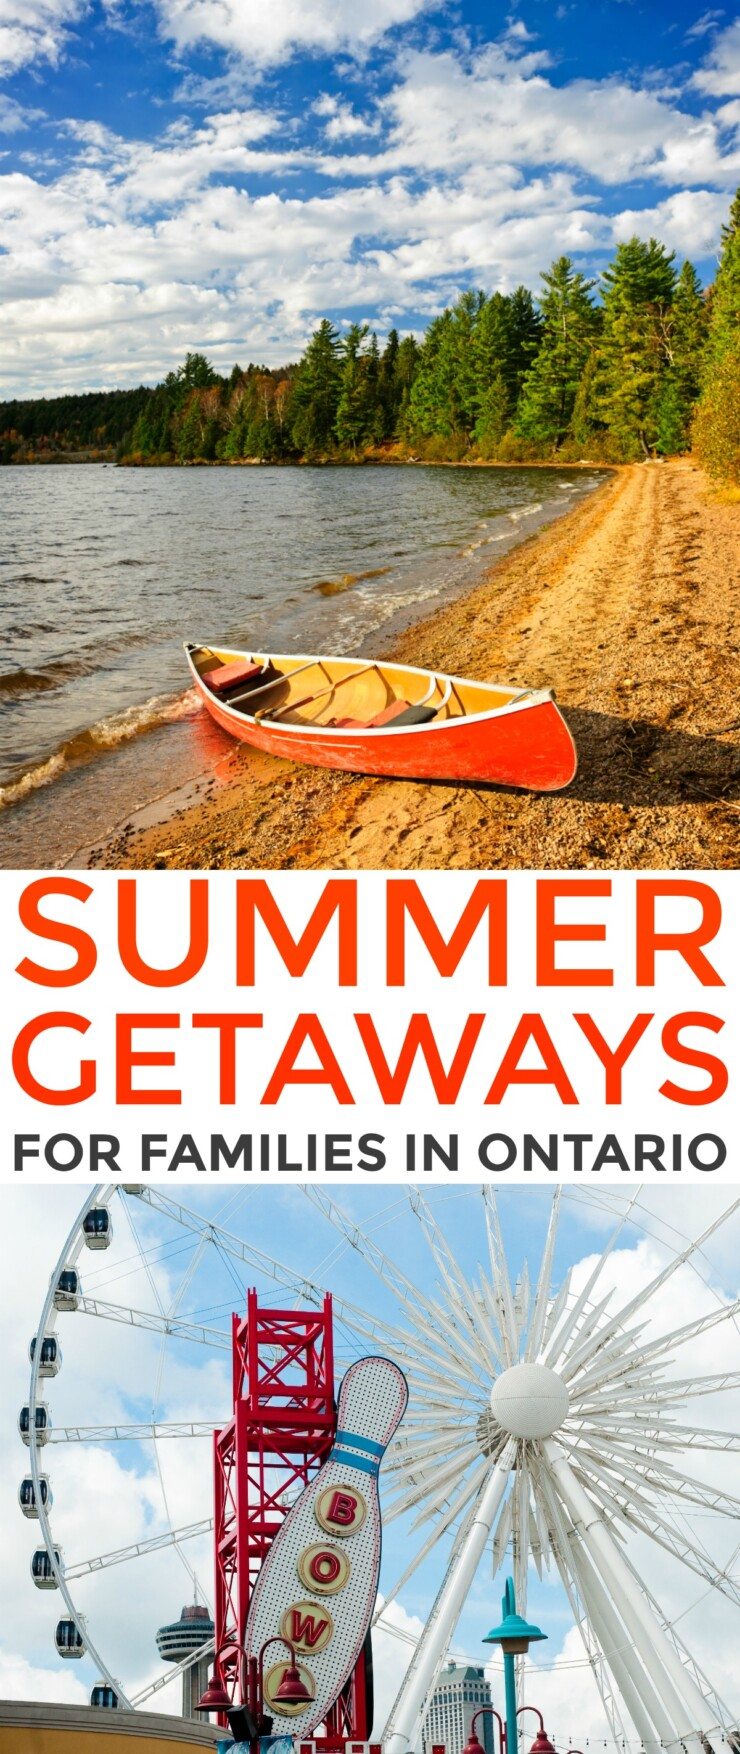 While Canadians, especially those in Ontario do not usually experience a long summer, we can certainly make the most of the time we get. With so many different summer getaways for families in Ontario to choose from, there is no shortage of fun to be had each summer.